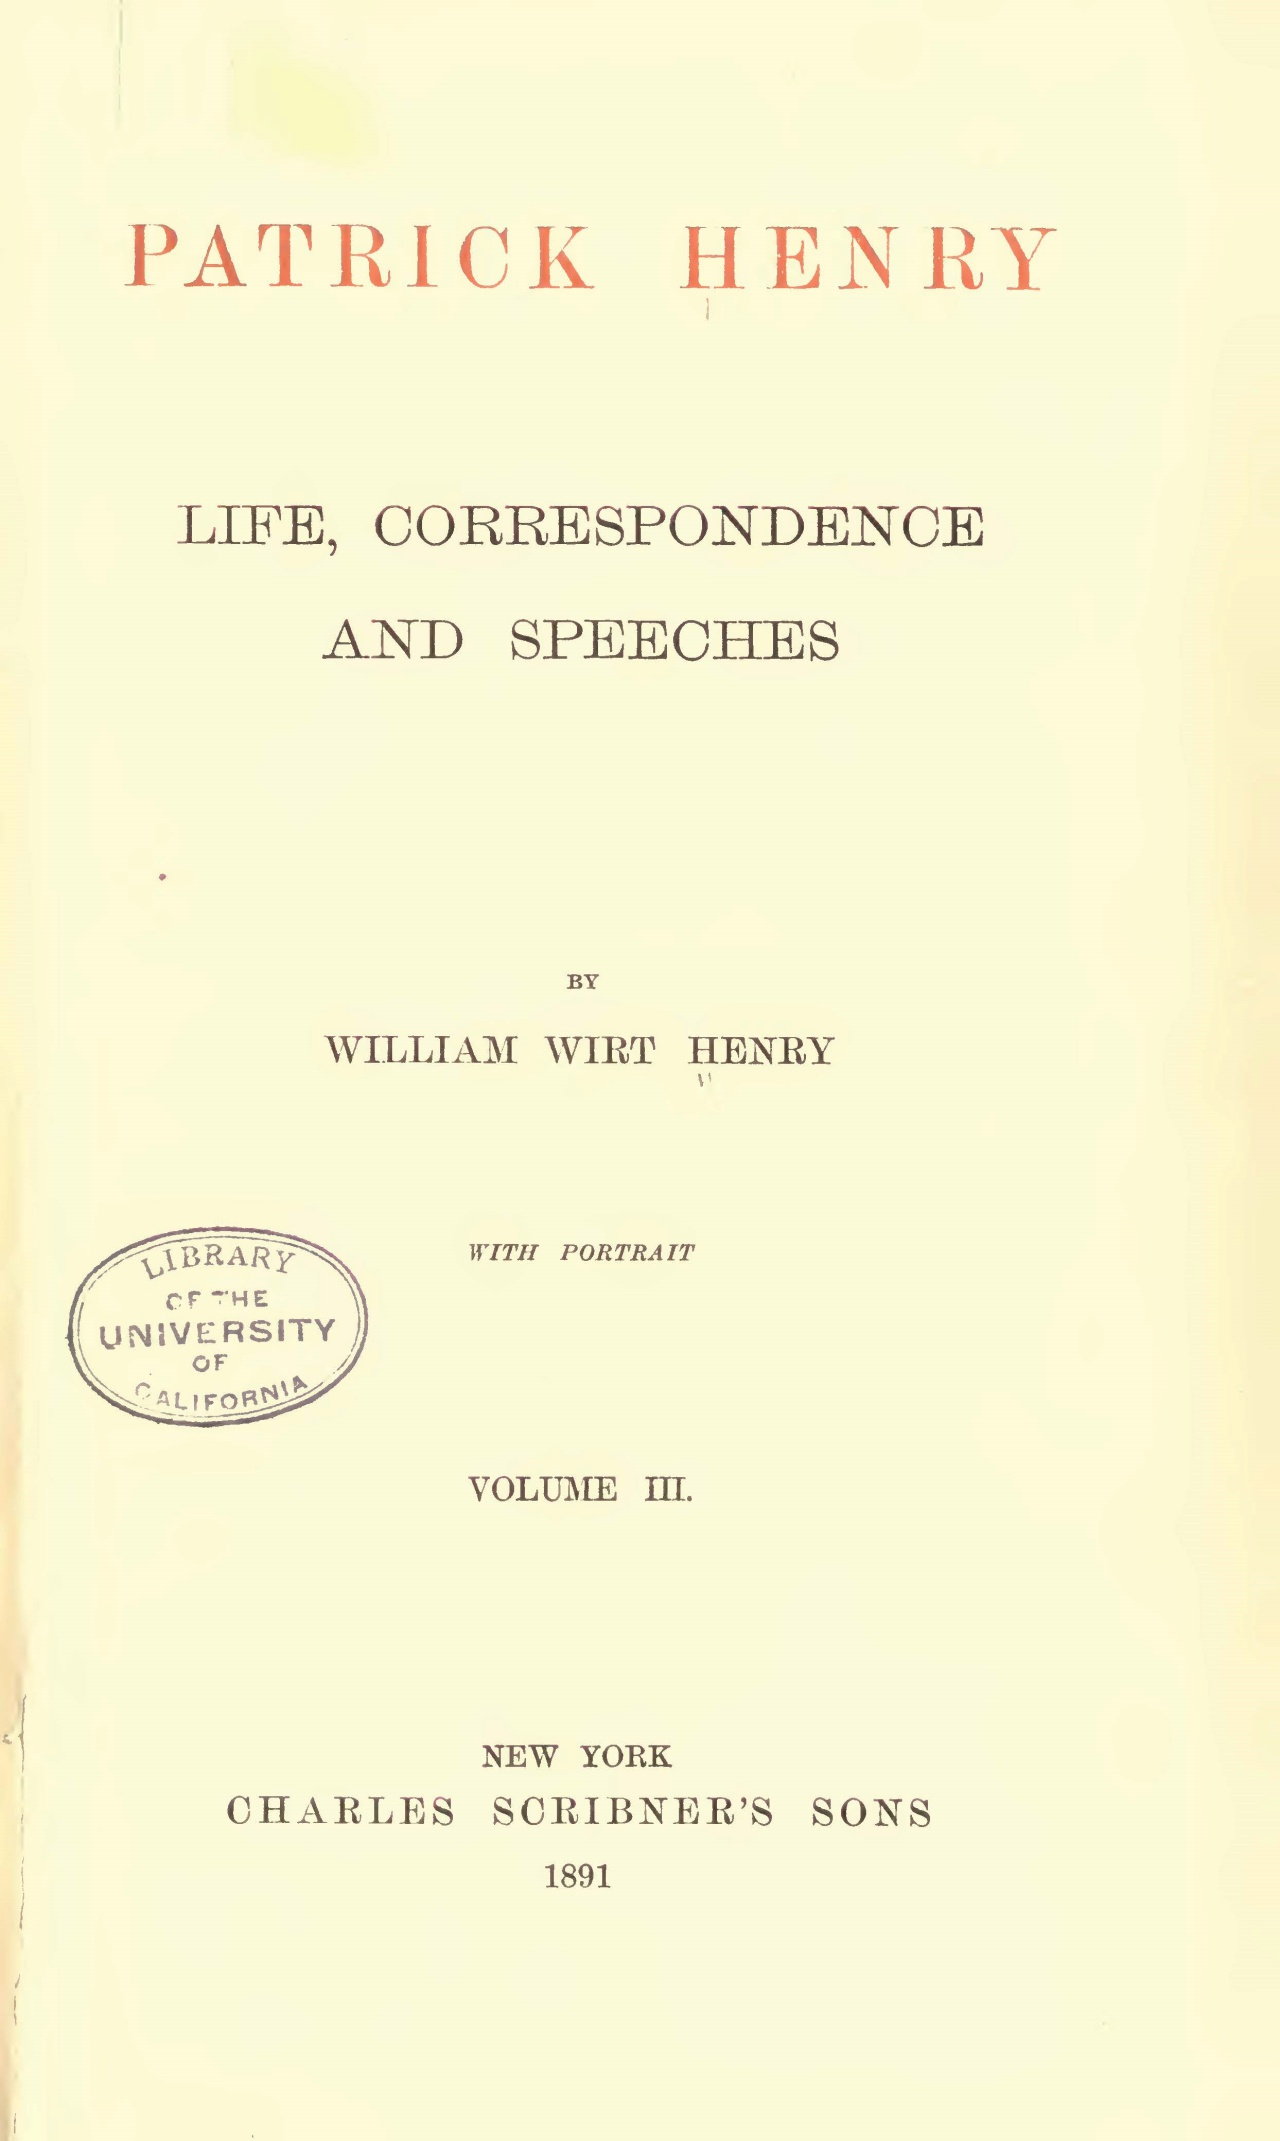 Henry, William Wirt, Patrick Henry Life Correspondence and Speeches, Vol. 3 Title Page.jpg